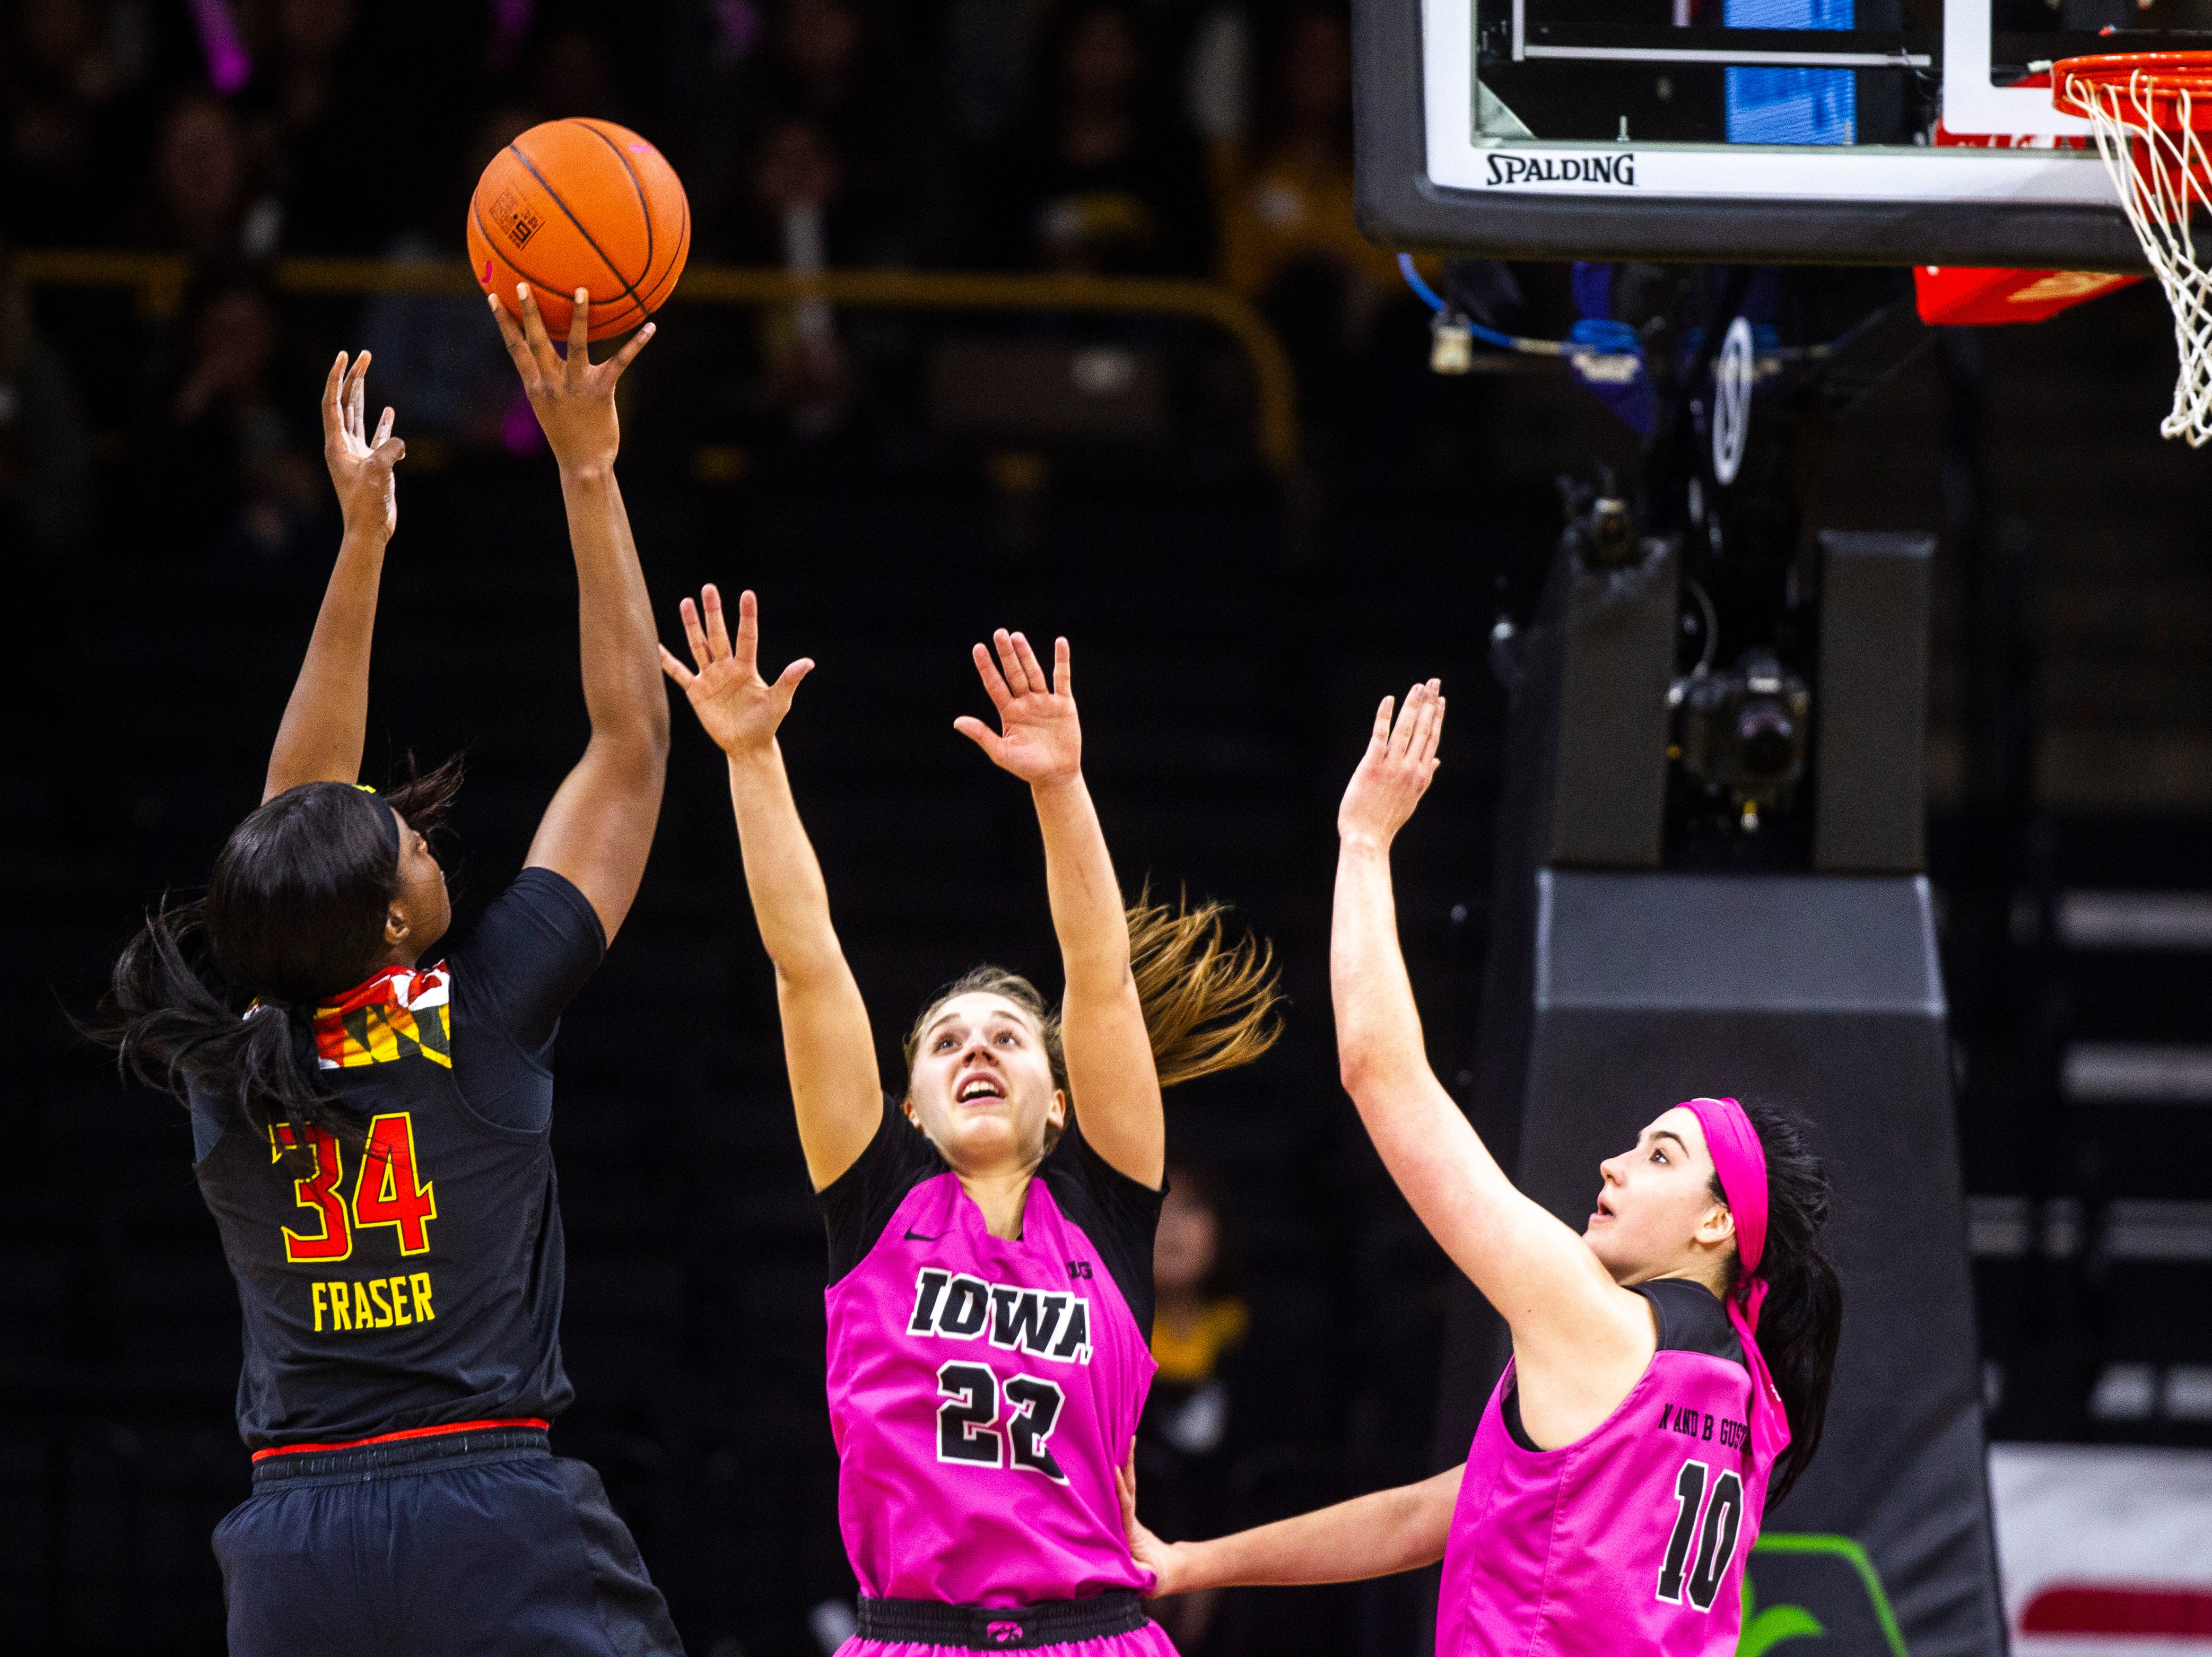 Maryland forward Brianna Fraser (34) attempts a basket while Iowa guard Kathleen Doyle (22) and Iowa center Megan Gustafson (10) defend during a NCAA Big Ten Conference women's basketball game on Sunday, Feb. 17, 2019 at Carver-Hawkeye Arena in Iowa City, Iowa.